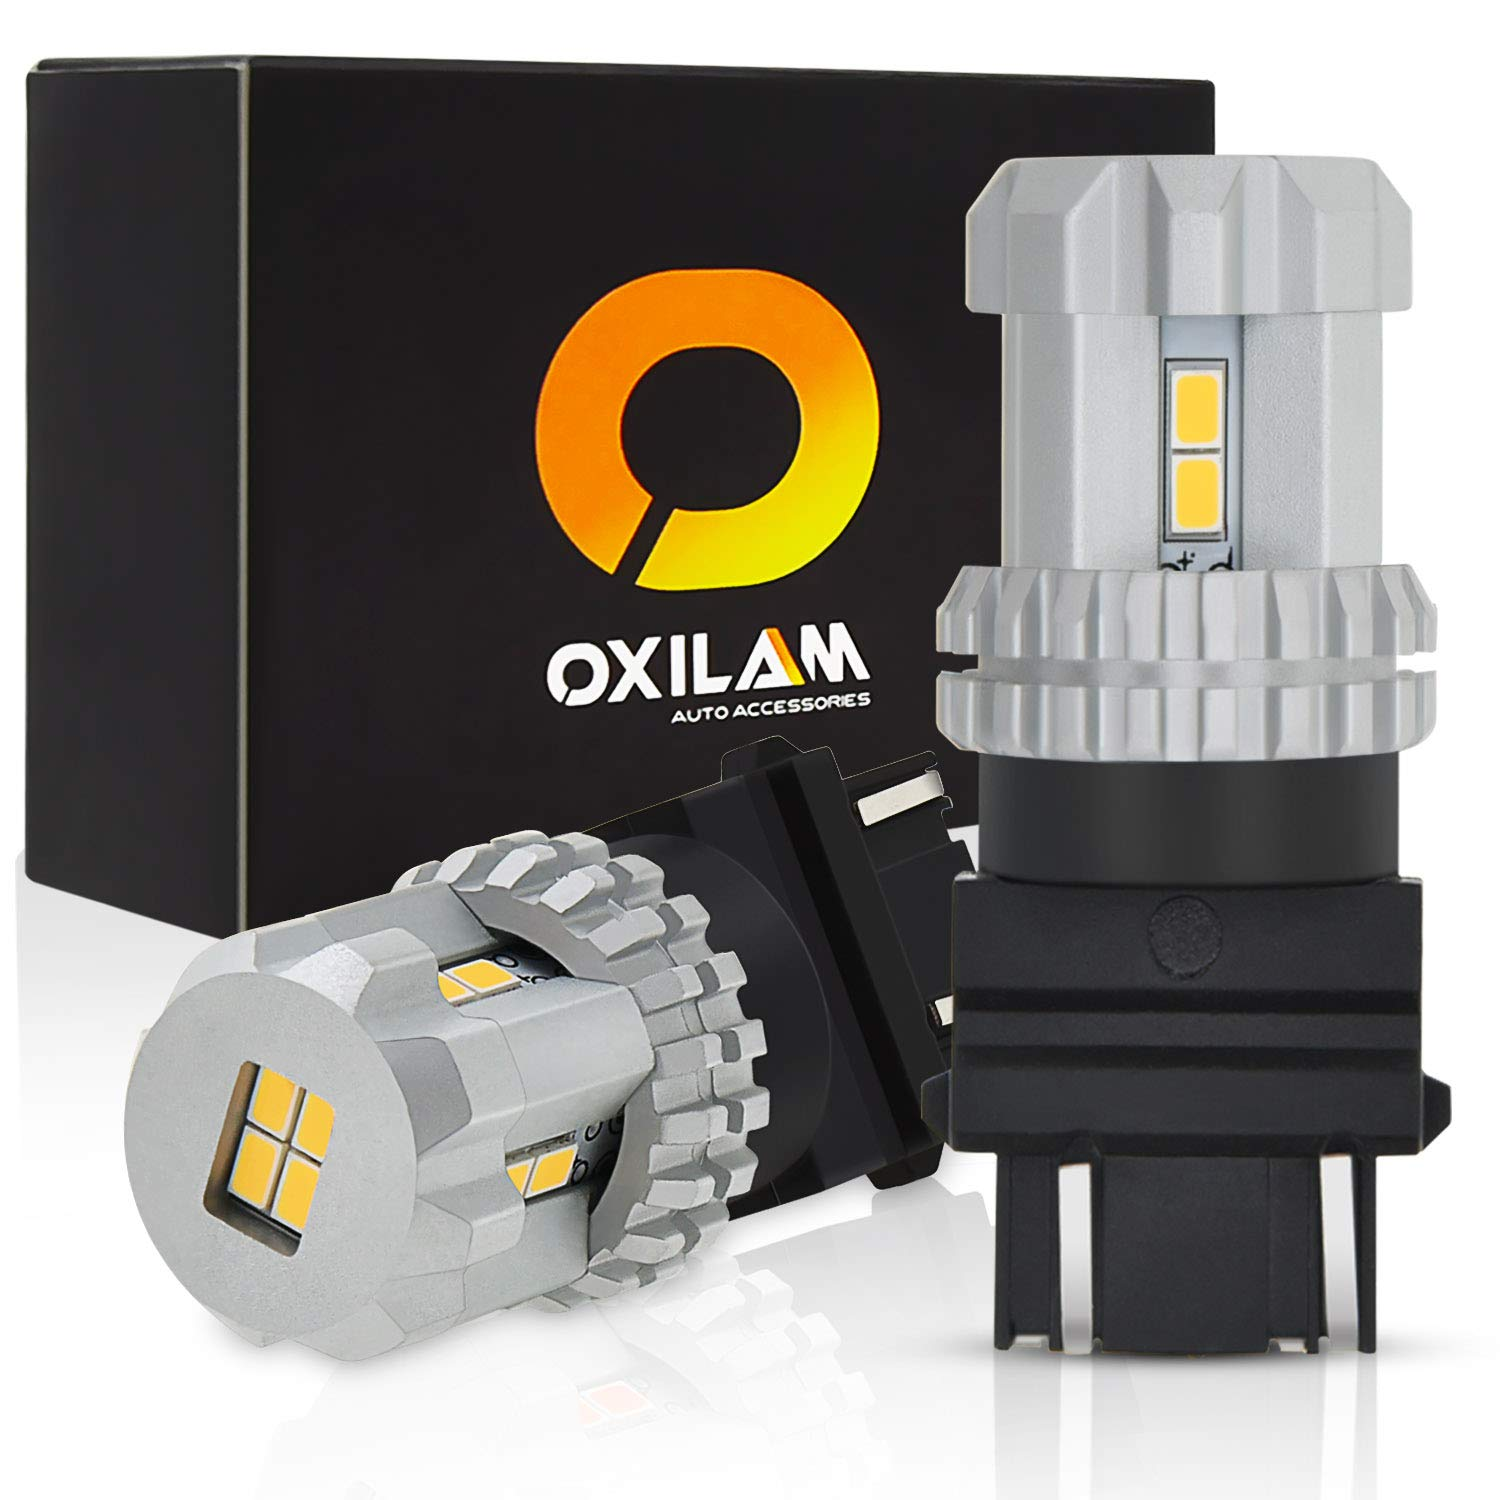 OXILAM [2018 Newest] LED Bulbs Backup Reverse Light or DRL Extremely Bright 3157 3057 4157 3156 LED Bulbs White with 12pcs 3020 Chipsets Instant Start Xenon White (2 PACK)